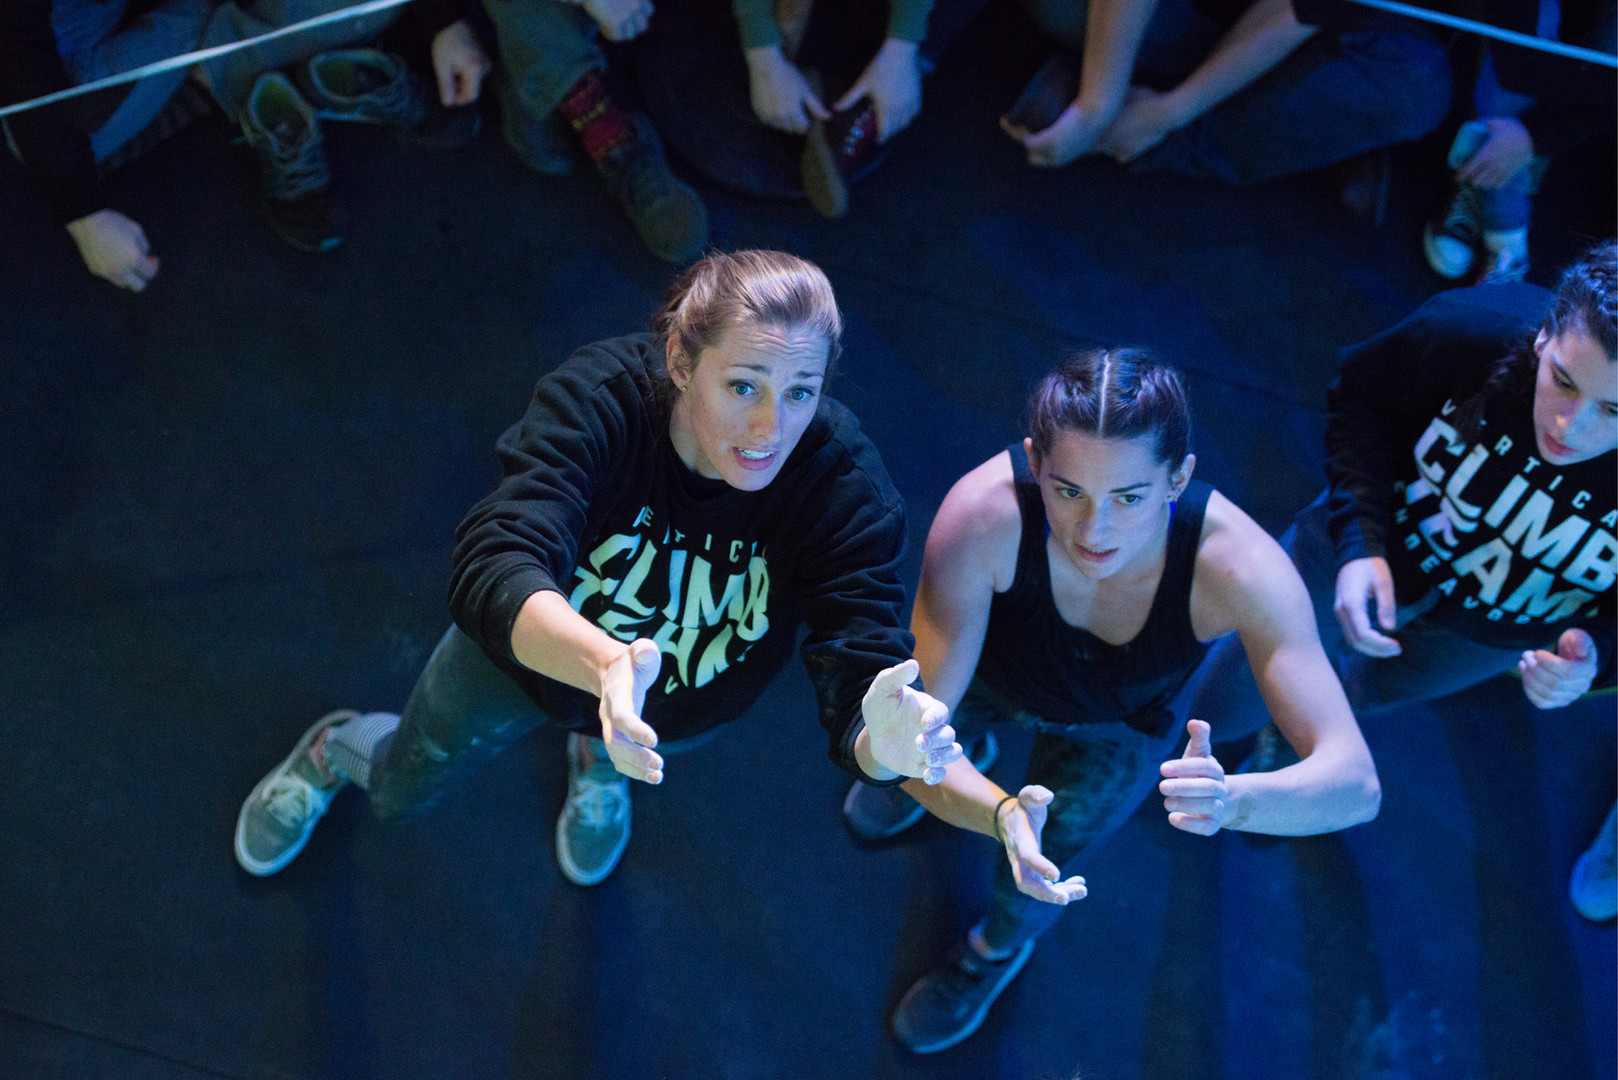 Professional climbers Alex Johnson and Kyra Condie examine a problem before competing in the finals of Boulderfest North, a climbing competition hosted by the Minneapolis Bouldering Project, on Saturday, Nov. 10.